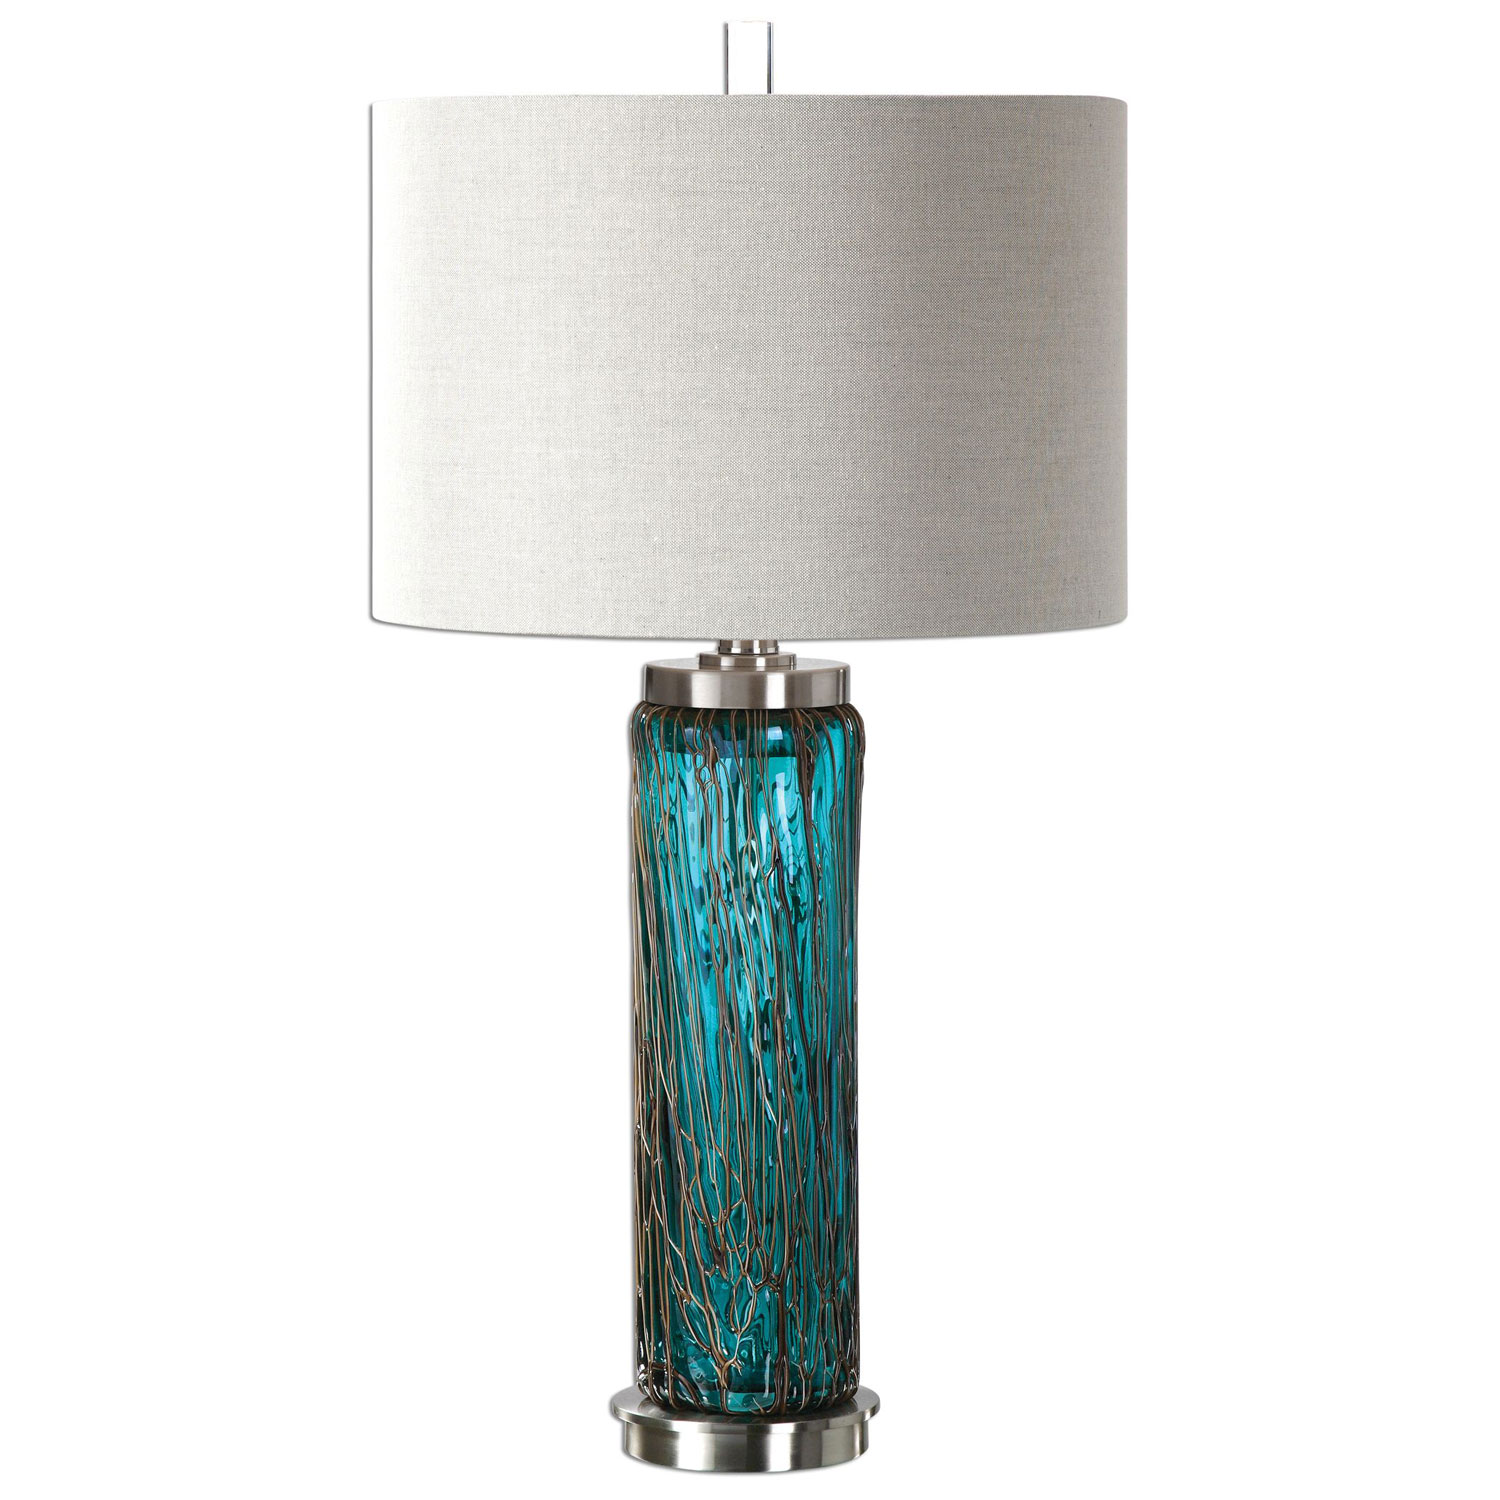 uttermost almanzora blue one light glass table lamp bellacor accent lamps hover zoom patio furniture for less dining set with bench half moon hall small round metal narrow nest